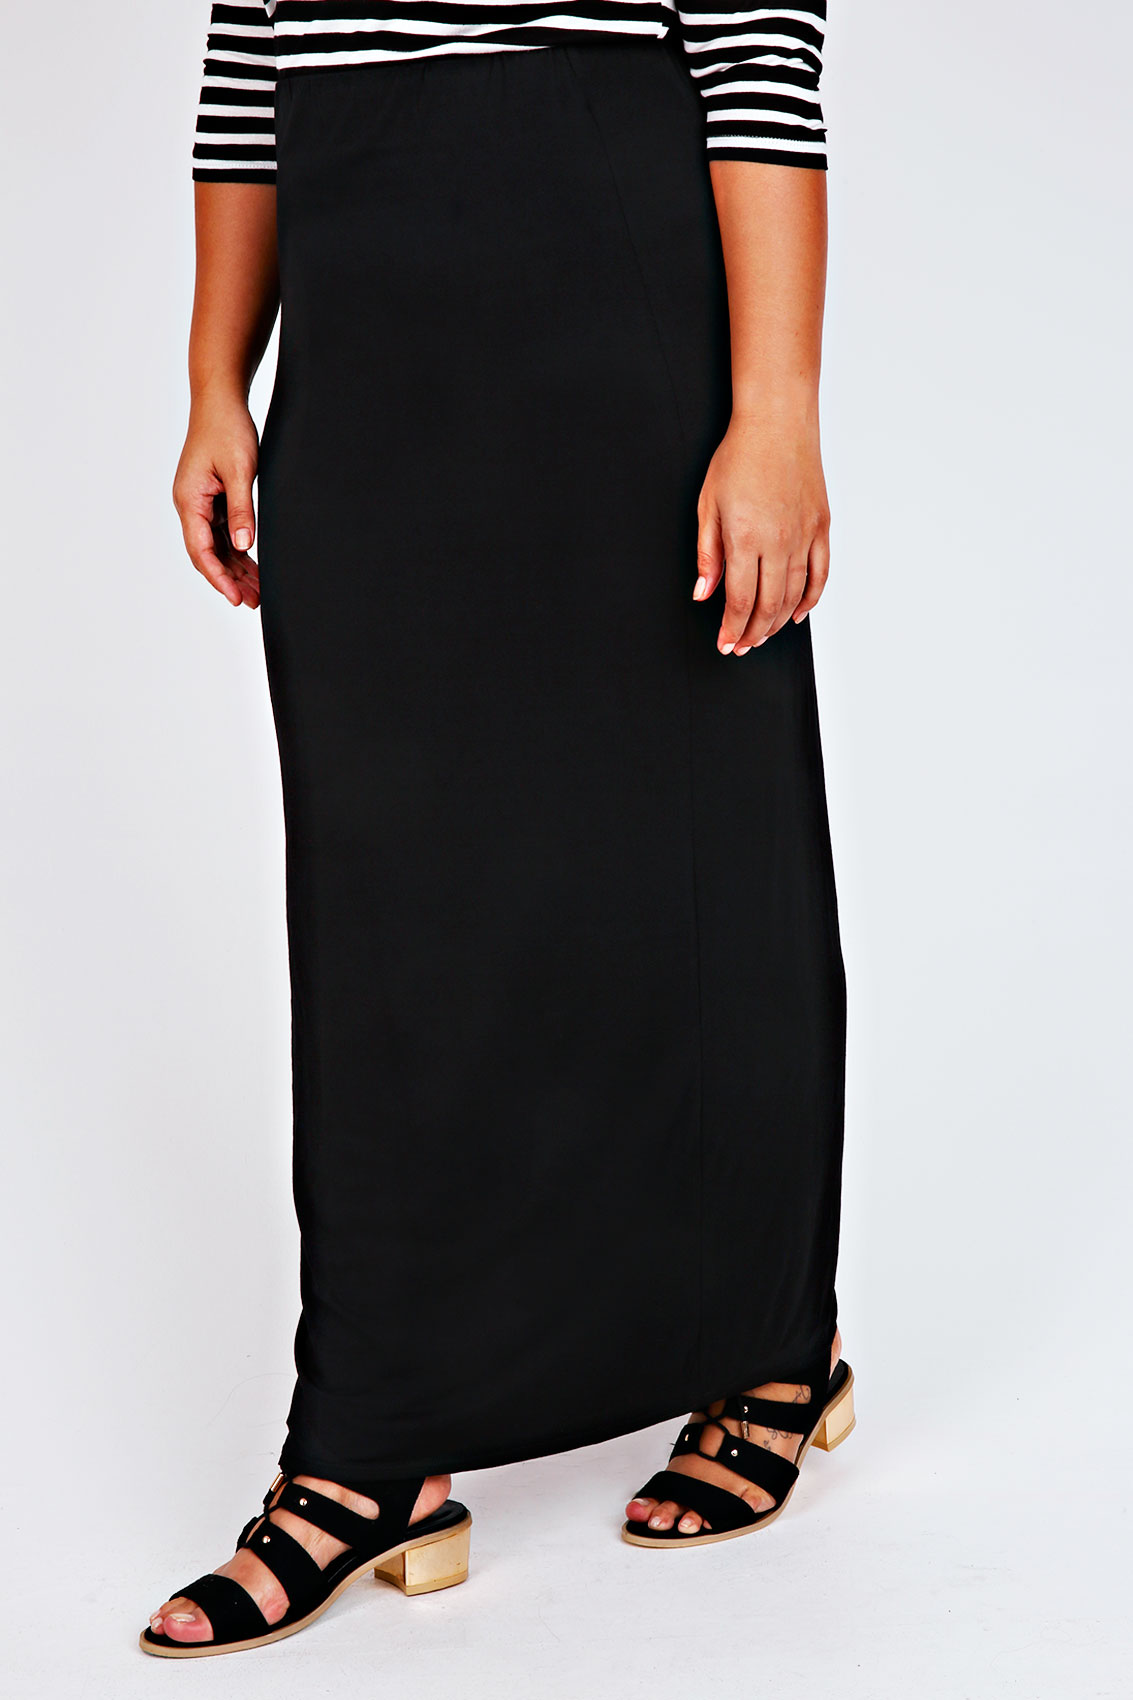 Black Jersey Maxi Tube Skirt Plus size 14,16,18,20,22,24,26,28,30 ...